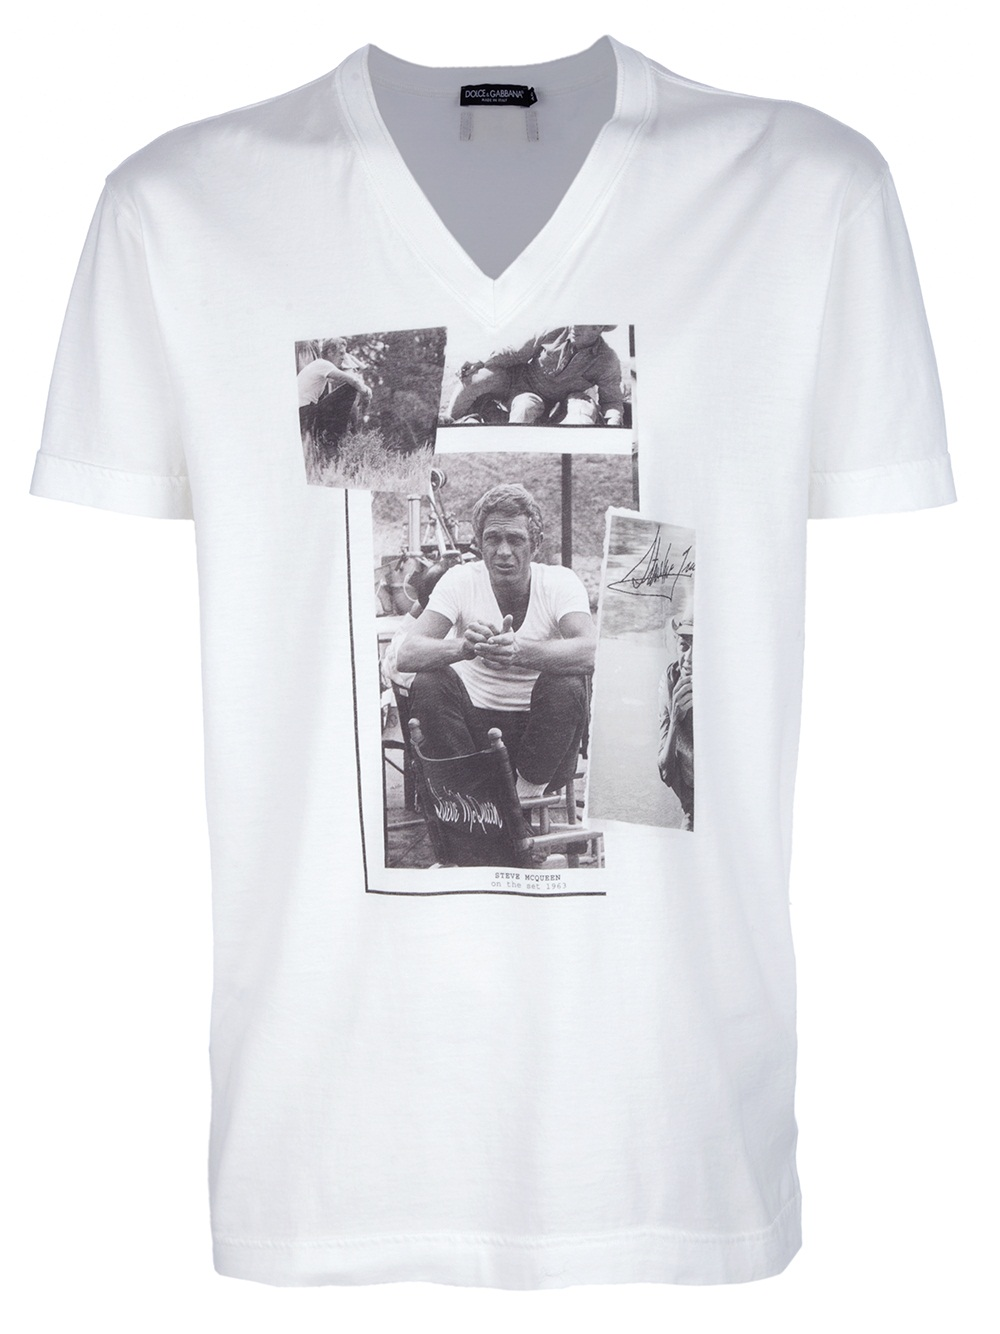 dolce gabbana steve mcqueen t shirt in white for men lyst. Black Bedroom Furniture Sets. Home Design Ideas